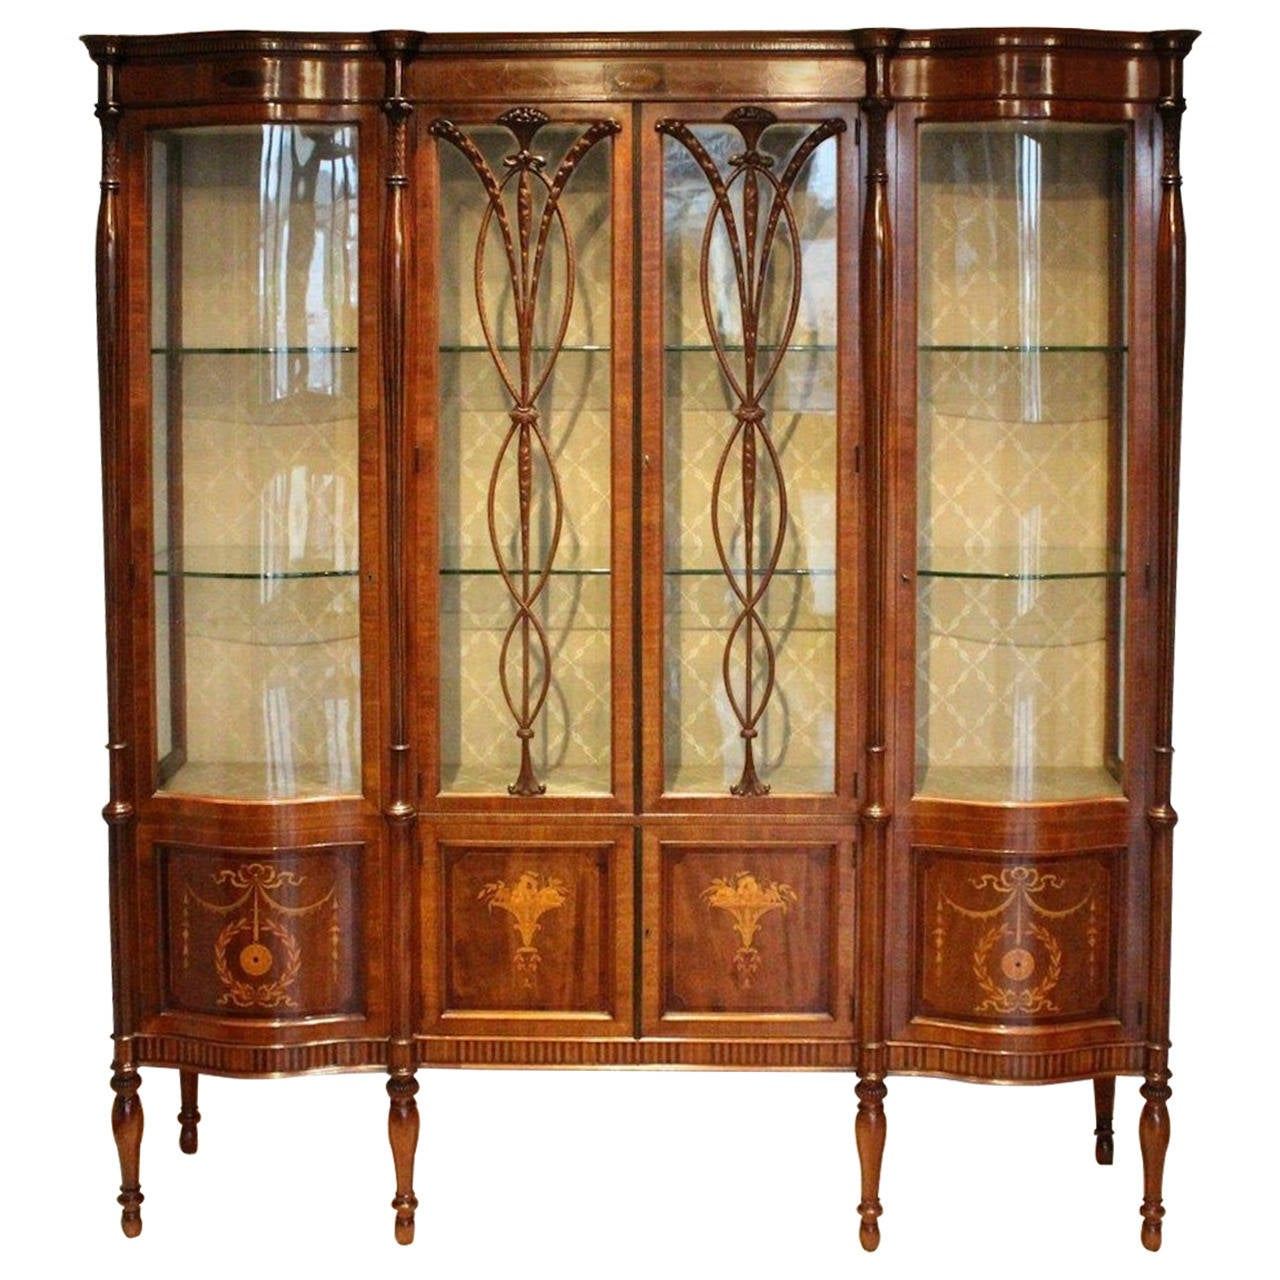 Fine Quality Mahogany Edwardian Period Antique Display Cabinet by Maple &  Co For Sale - Fine Quality Mahogany Edwardian Period Antique Display Cabinet By